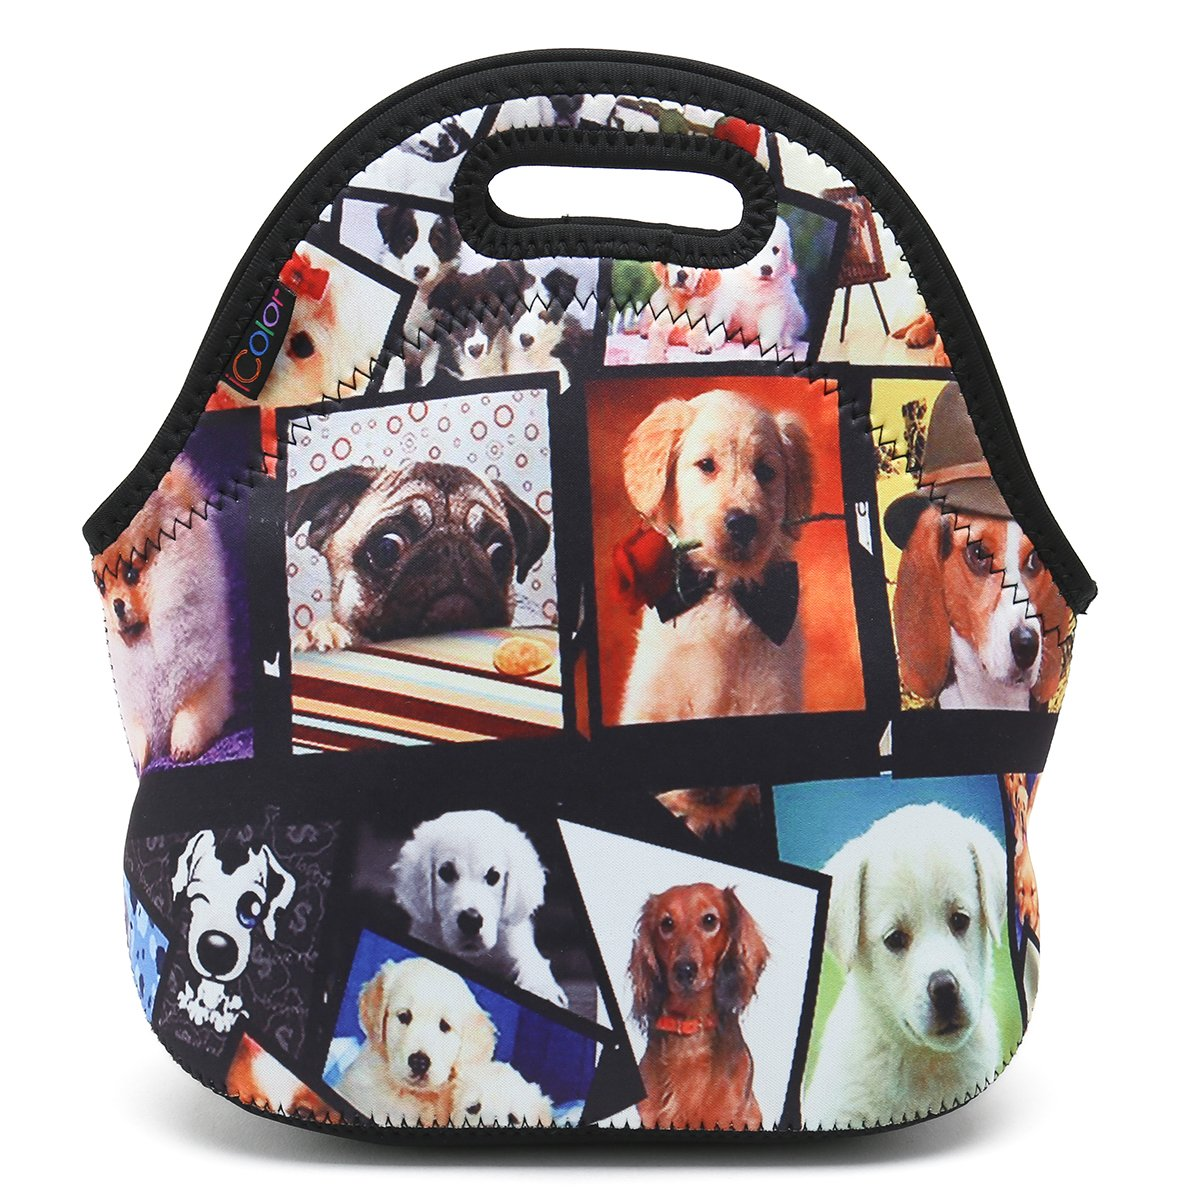 ICOLOR Dogs Design Hot Kids Neoprene Insulated Lunch Food Tote Bag Box cover baby bag Gourmet Handbag lunchbox Case For School work LB-115 by ICOLOR